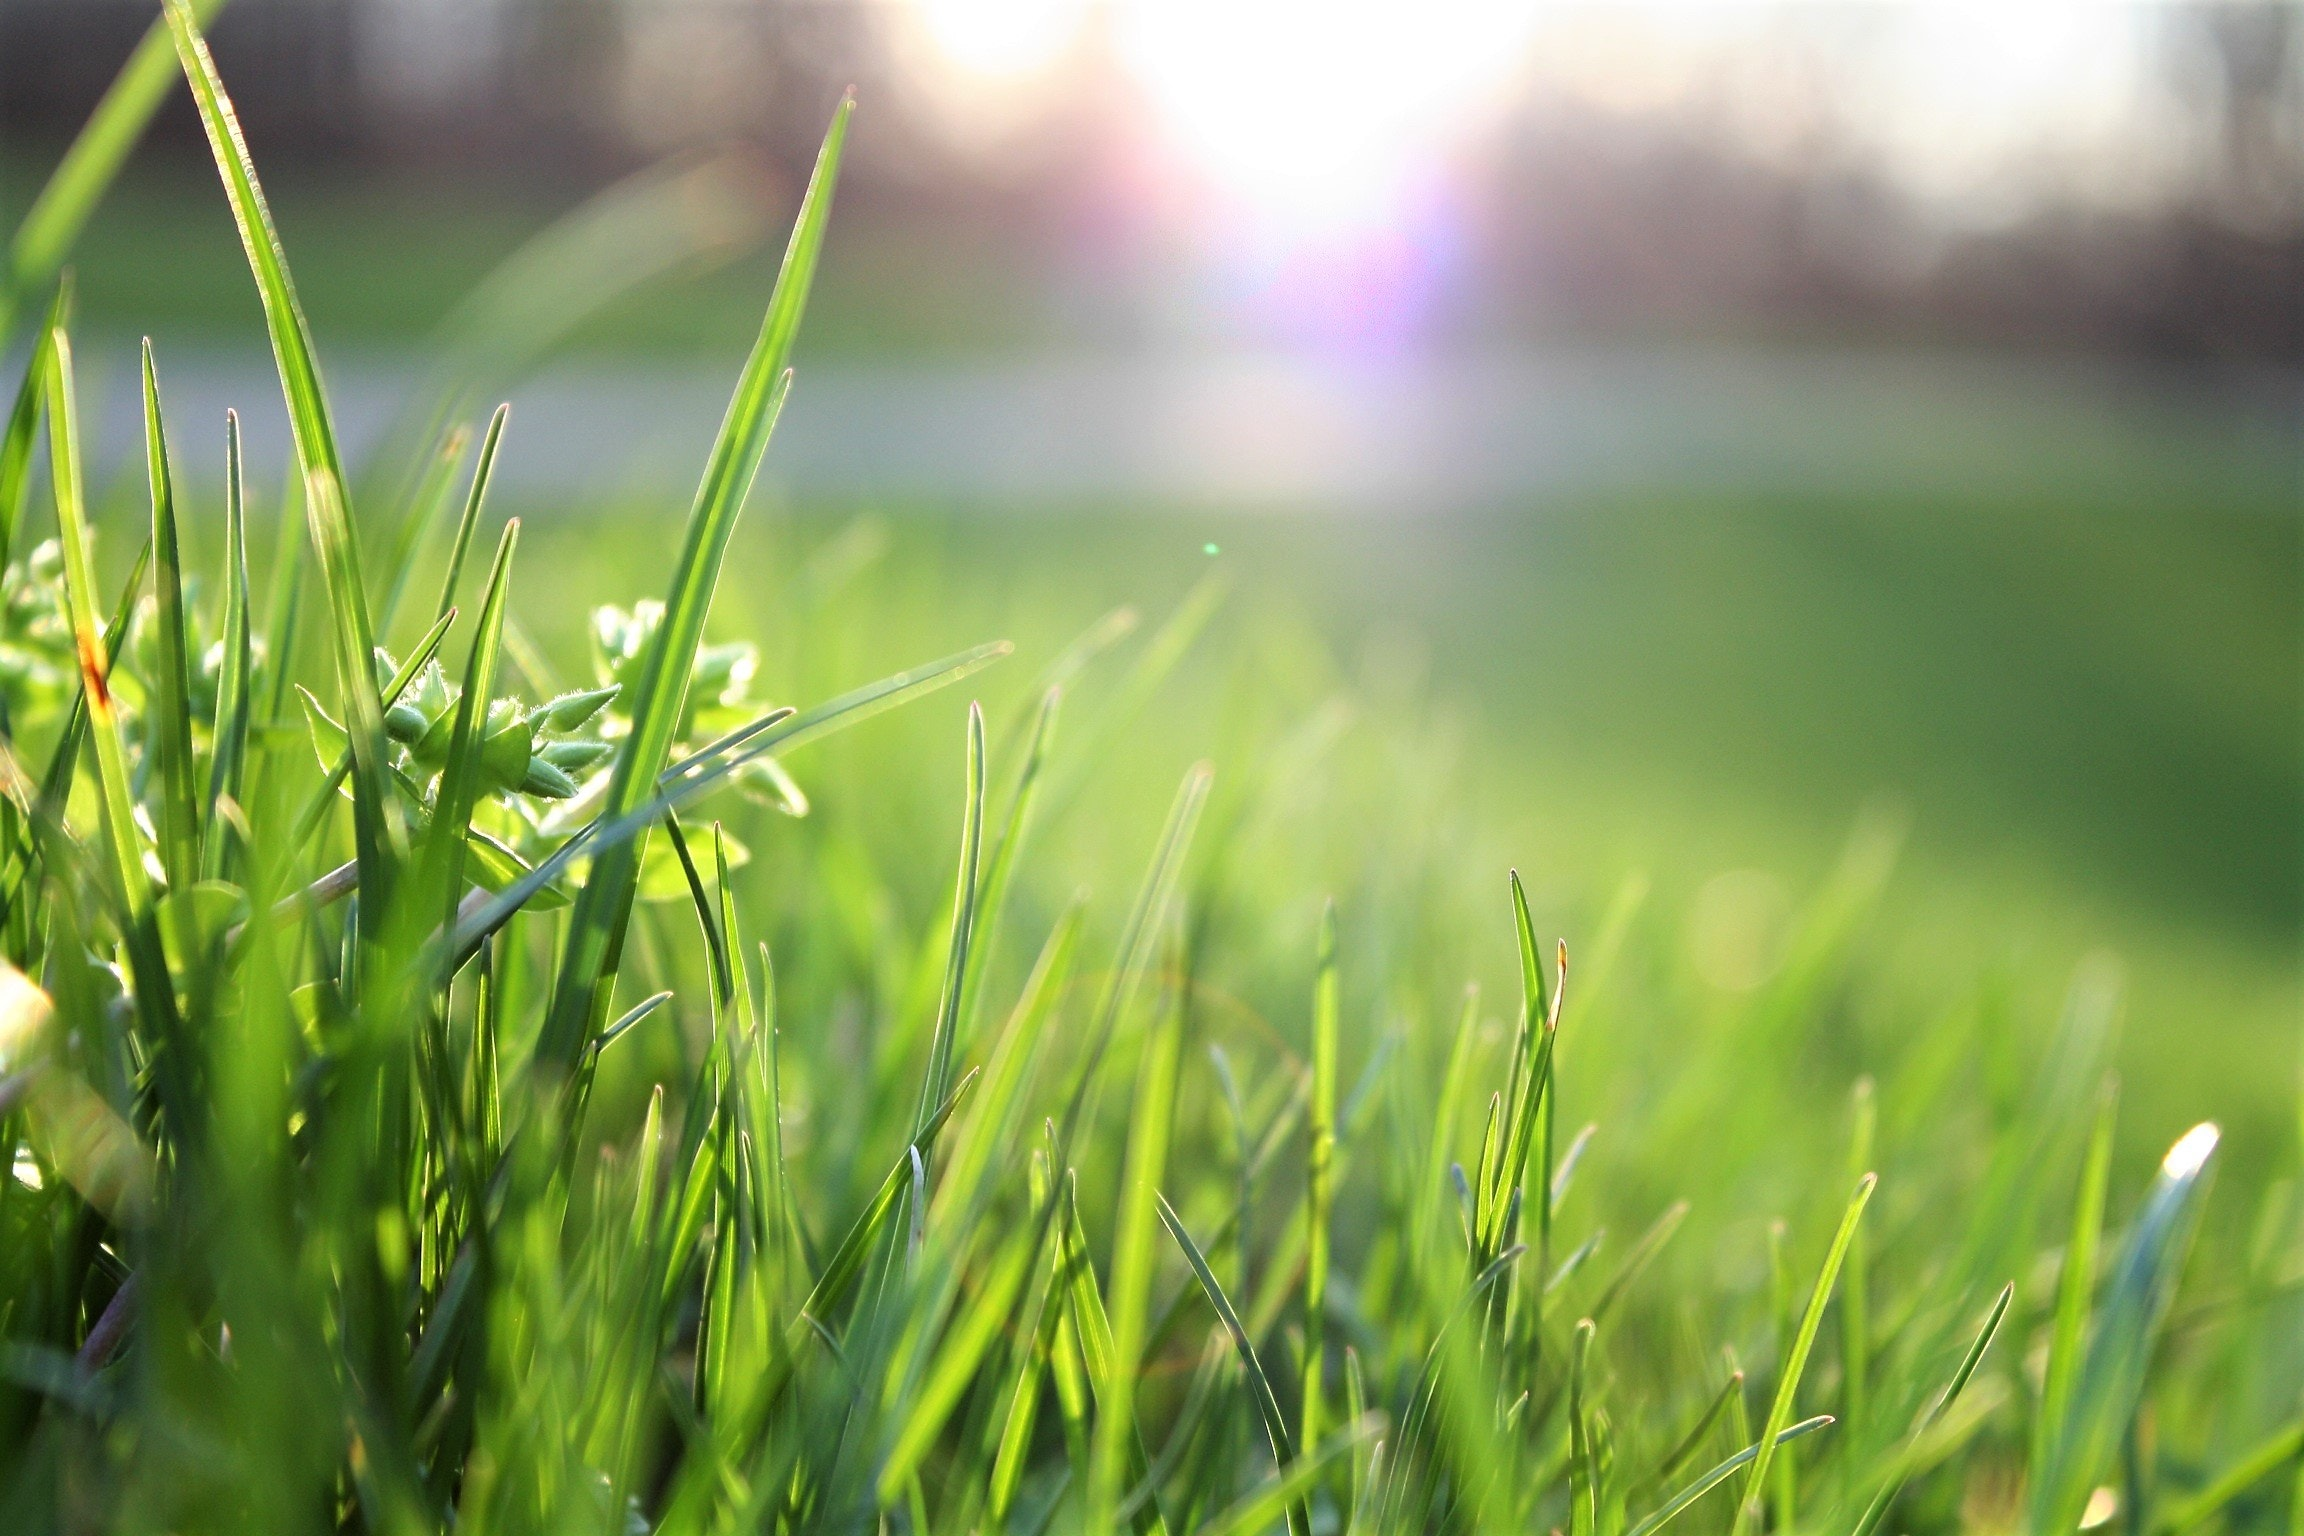 Lawn care business services keep this grass green